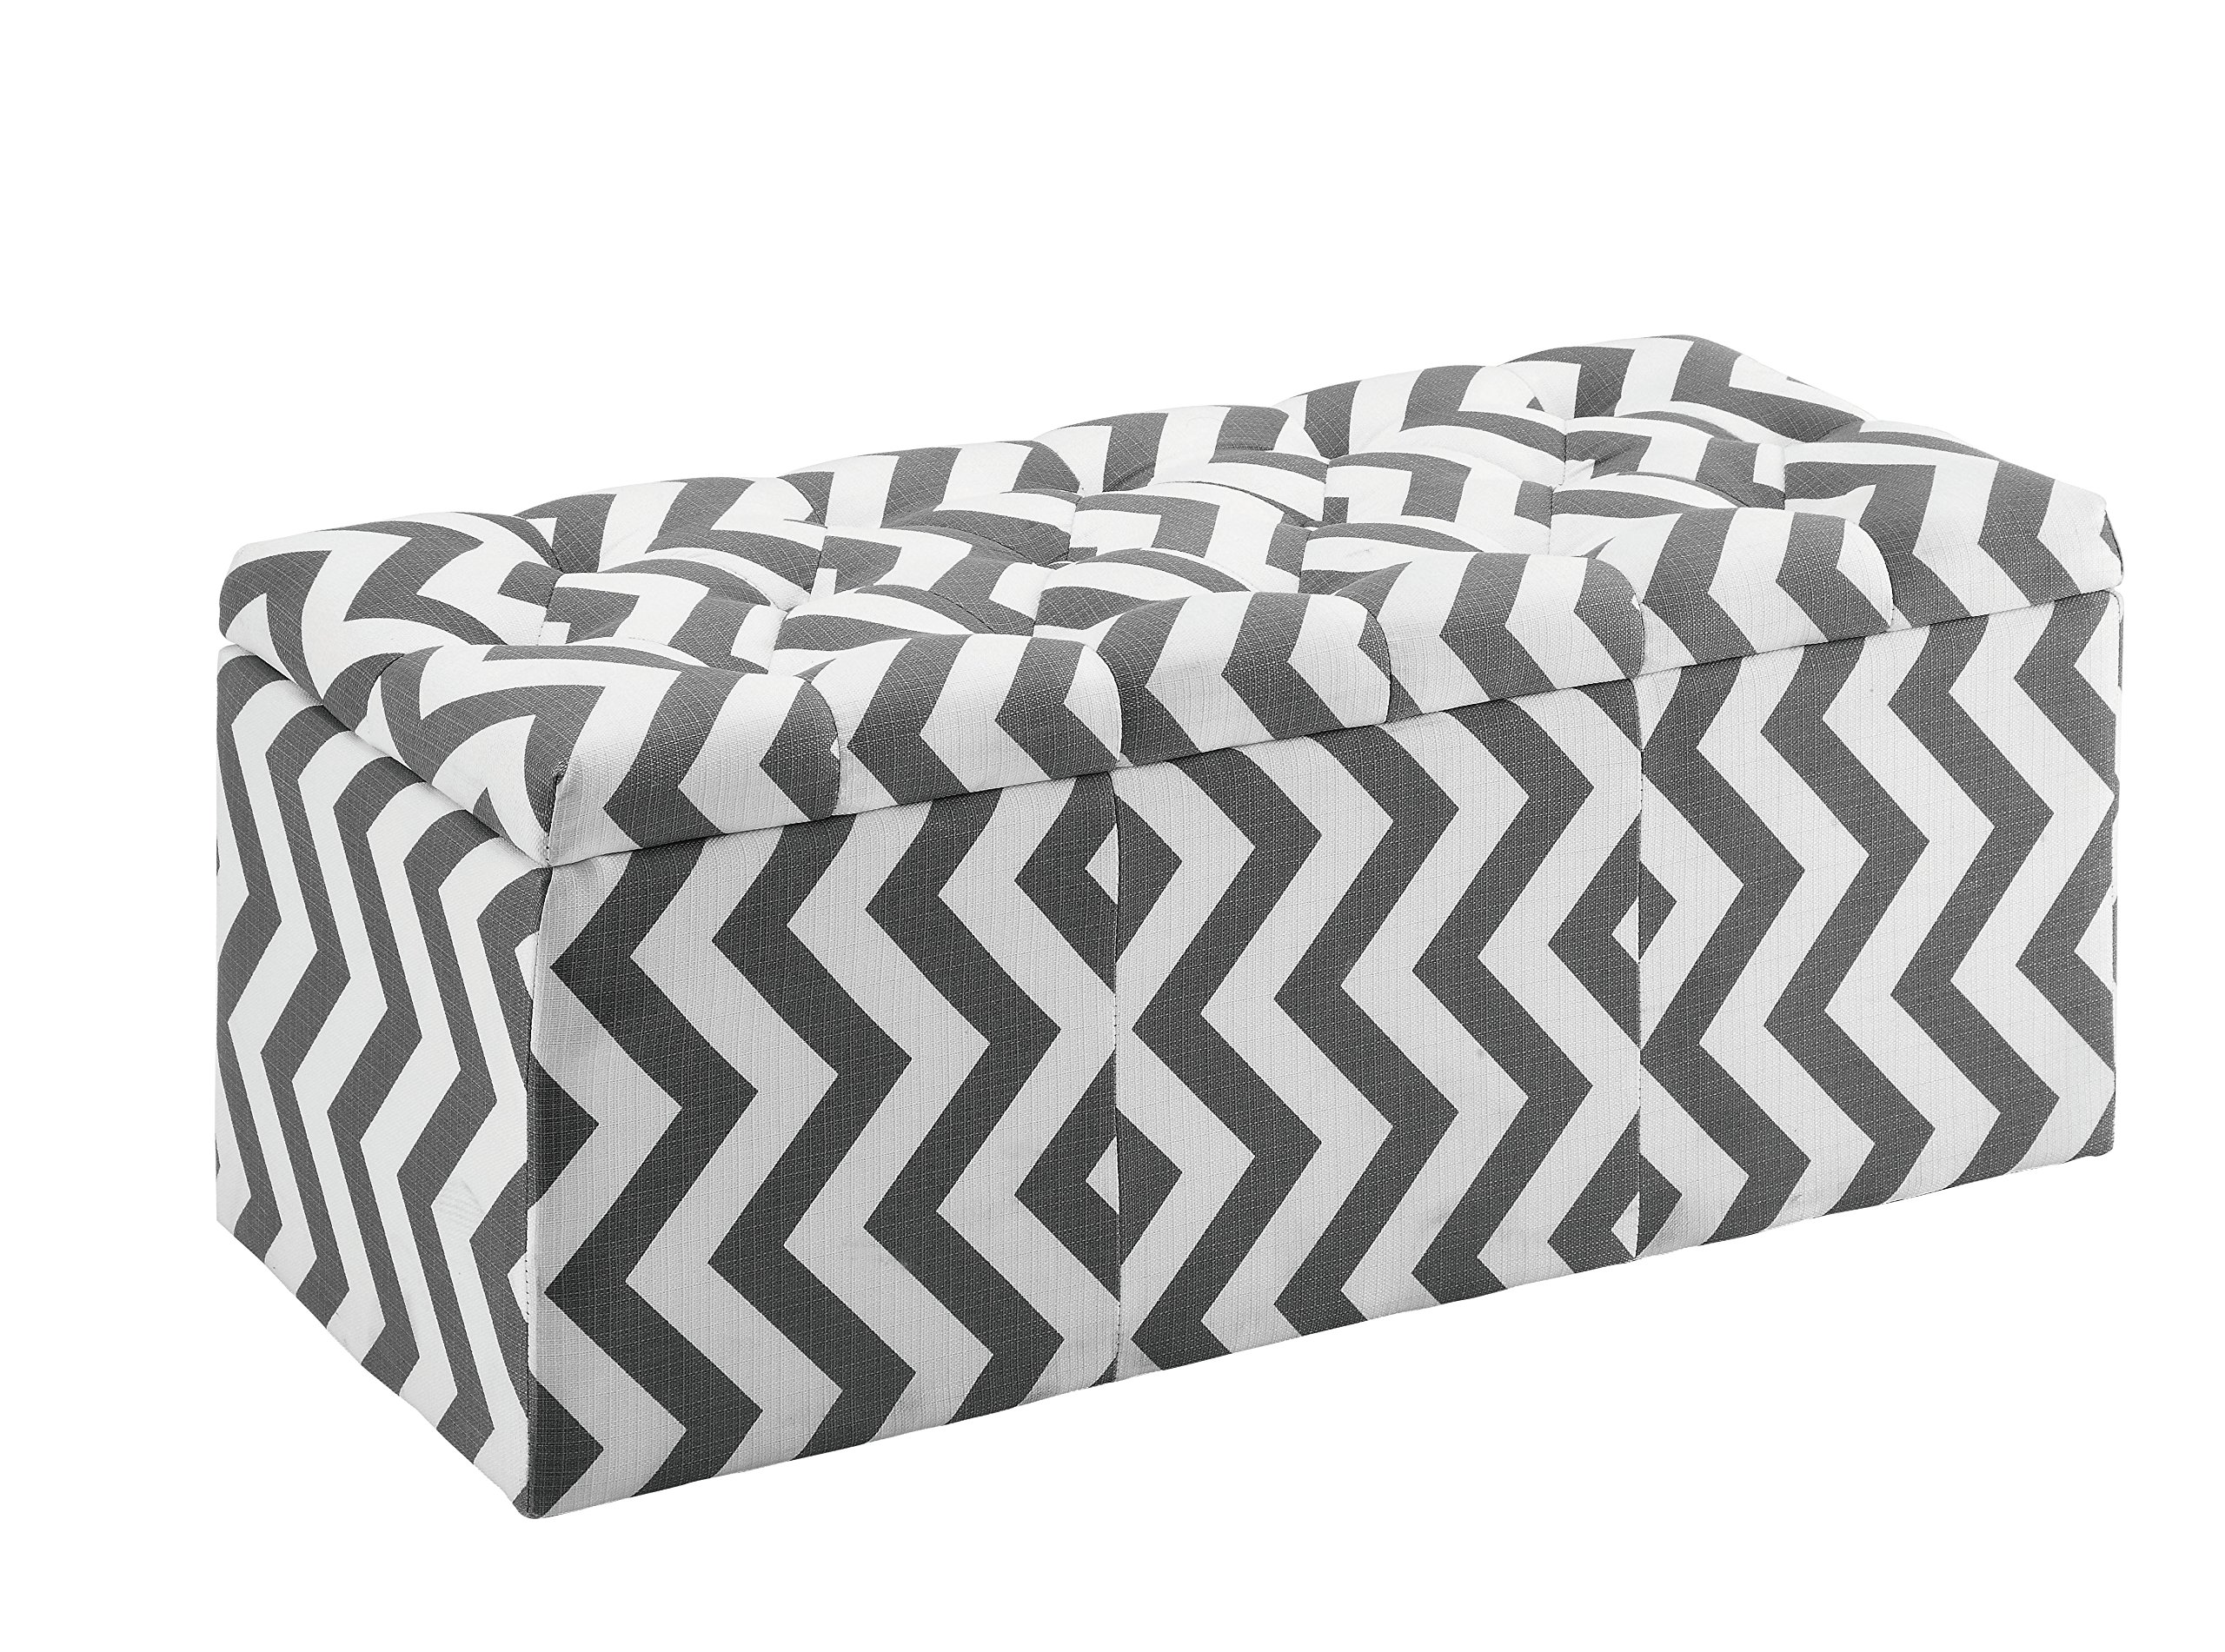 HOMES: Inside + Out IDF-BN6031GY Willy Chevron Storage Ottoman, Gray